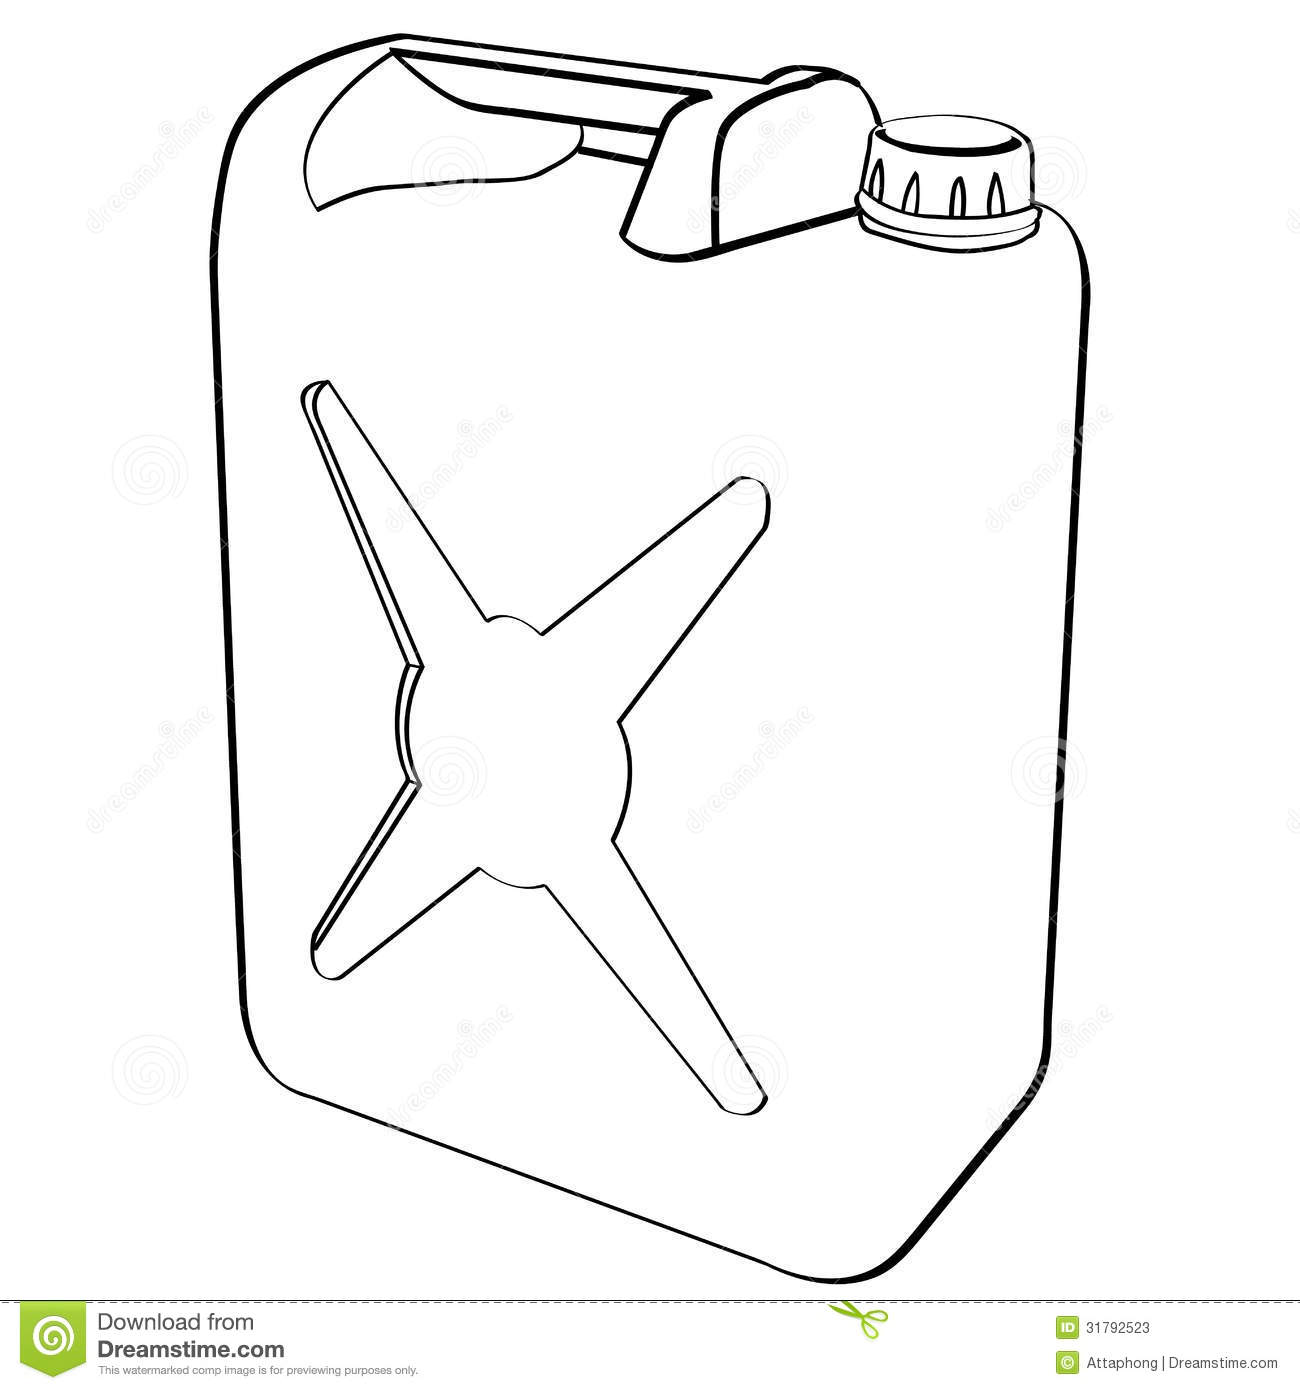 Fuel can vector stock vector. Illustration of economy